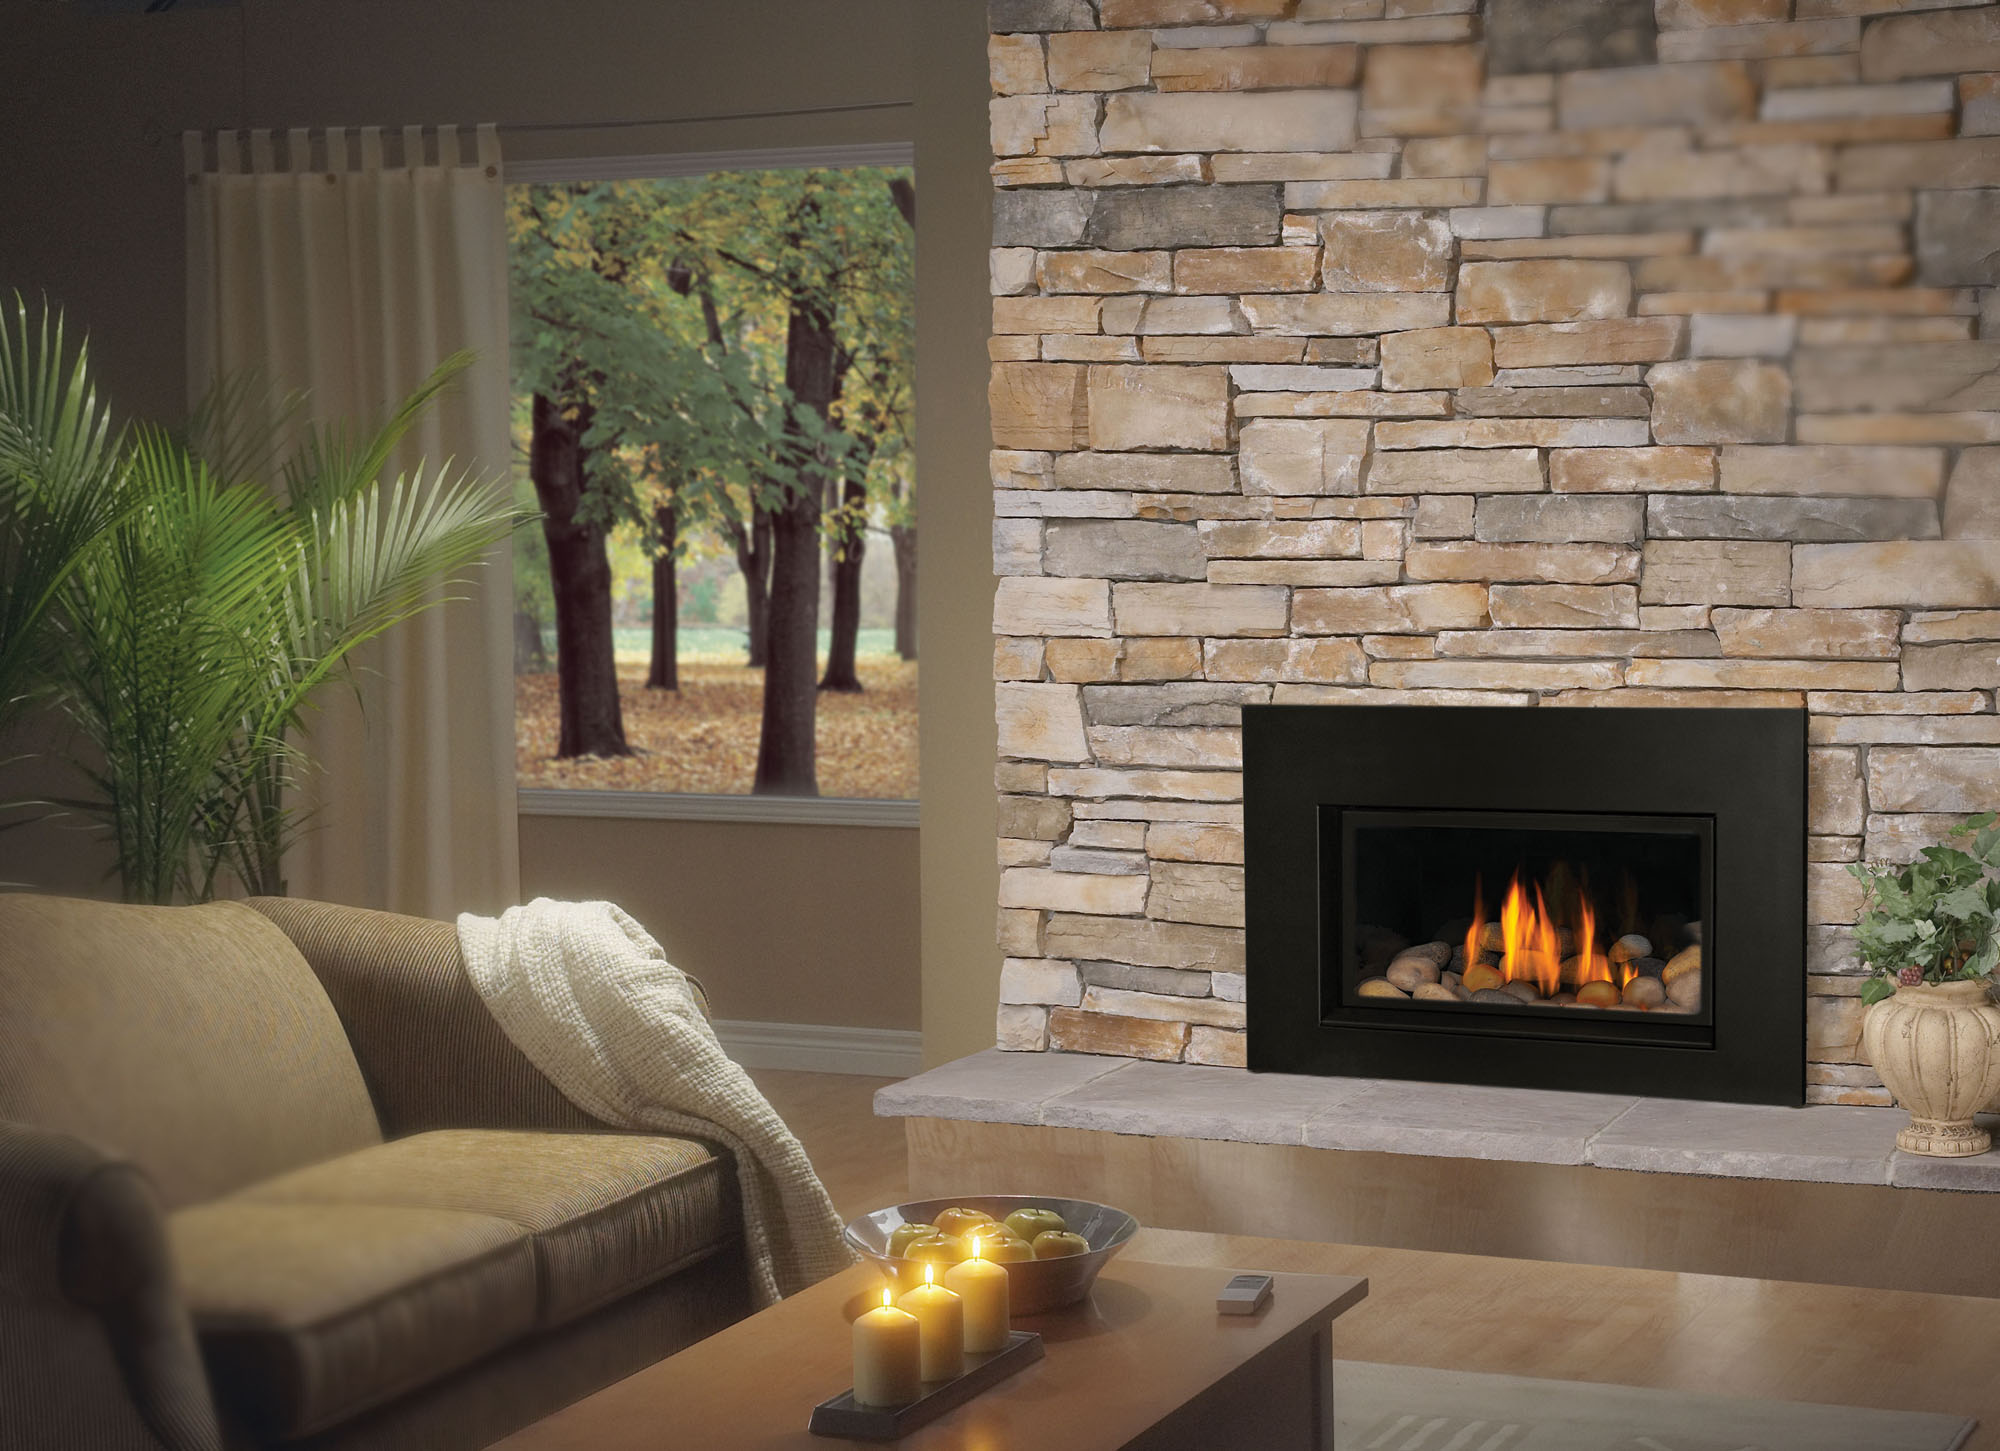 this blog stacked love just design chimney rock greige painted fireplace fireplaces stone masonry pin